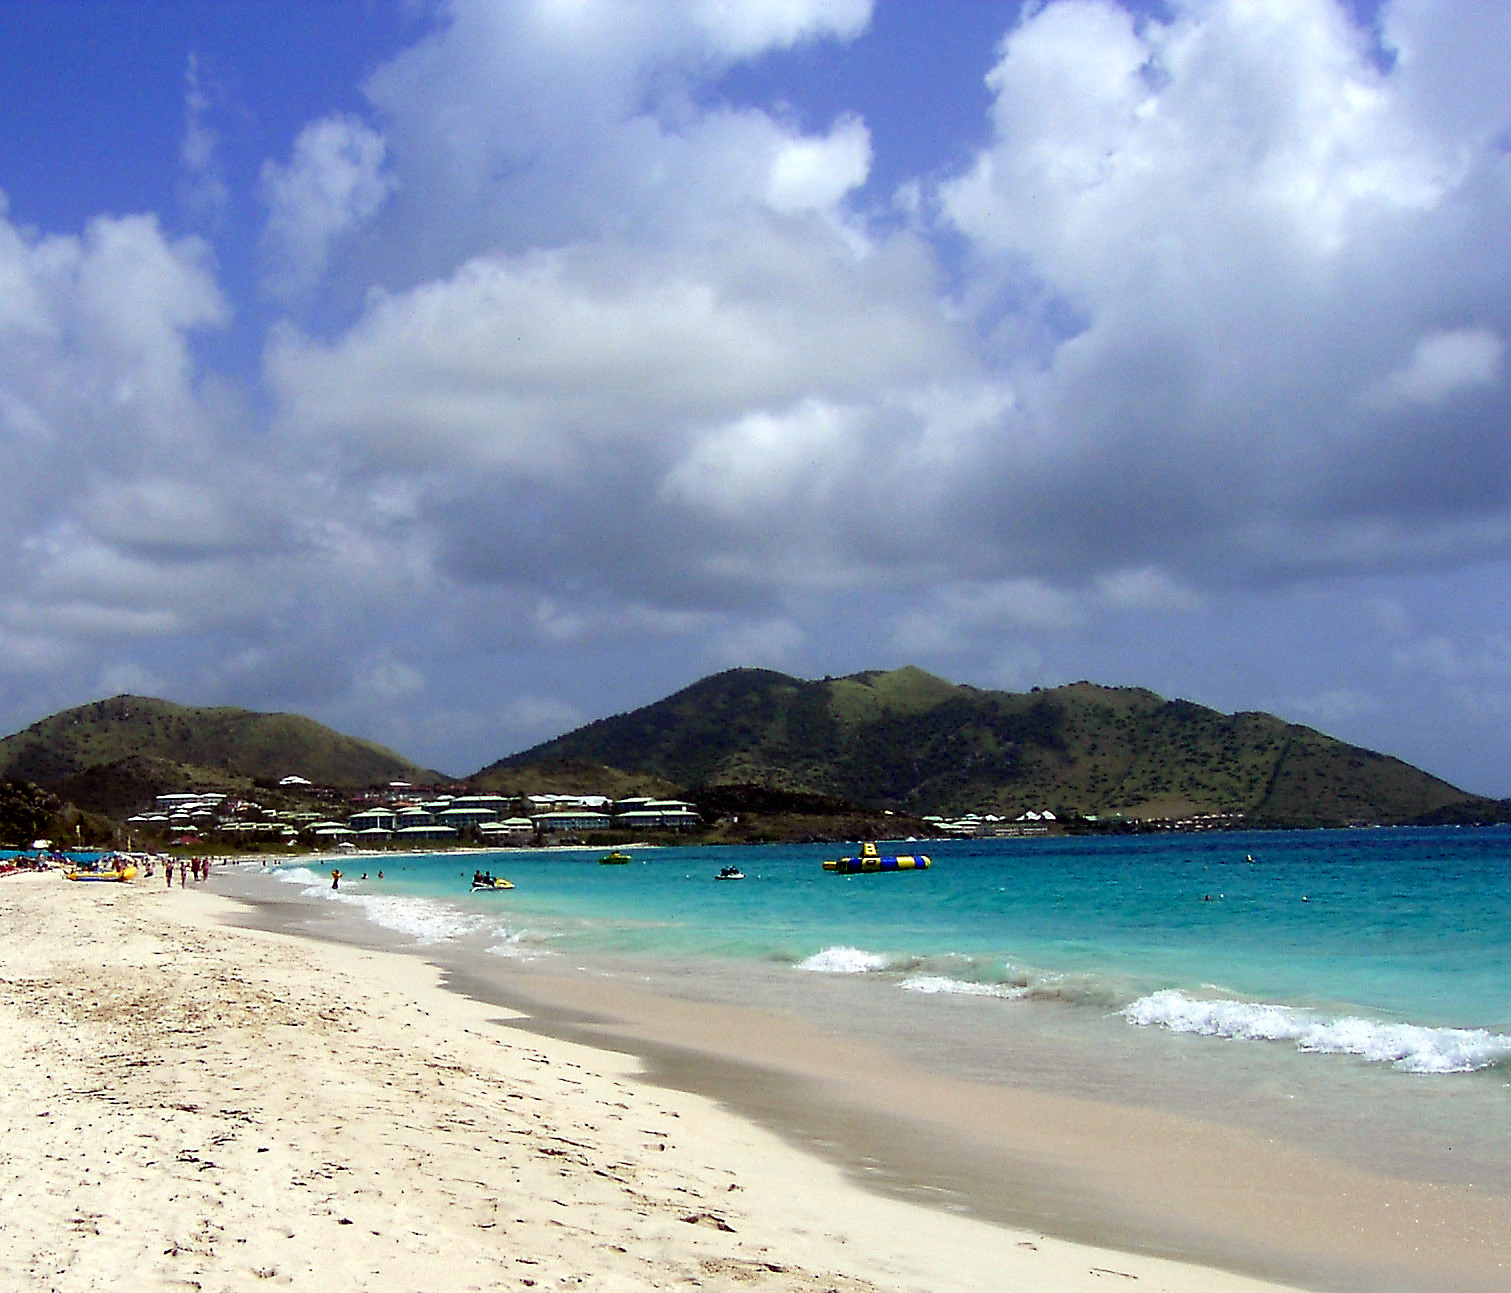 Taking It All Off in St. Martin - Putting It All On The Table